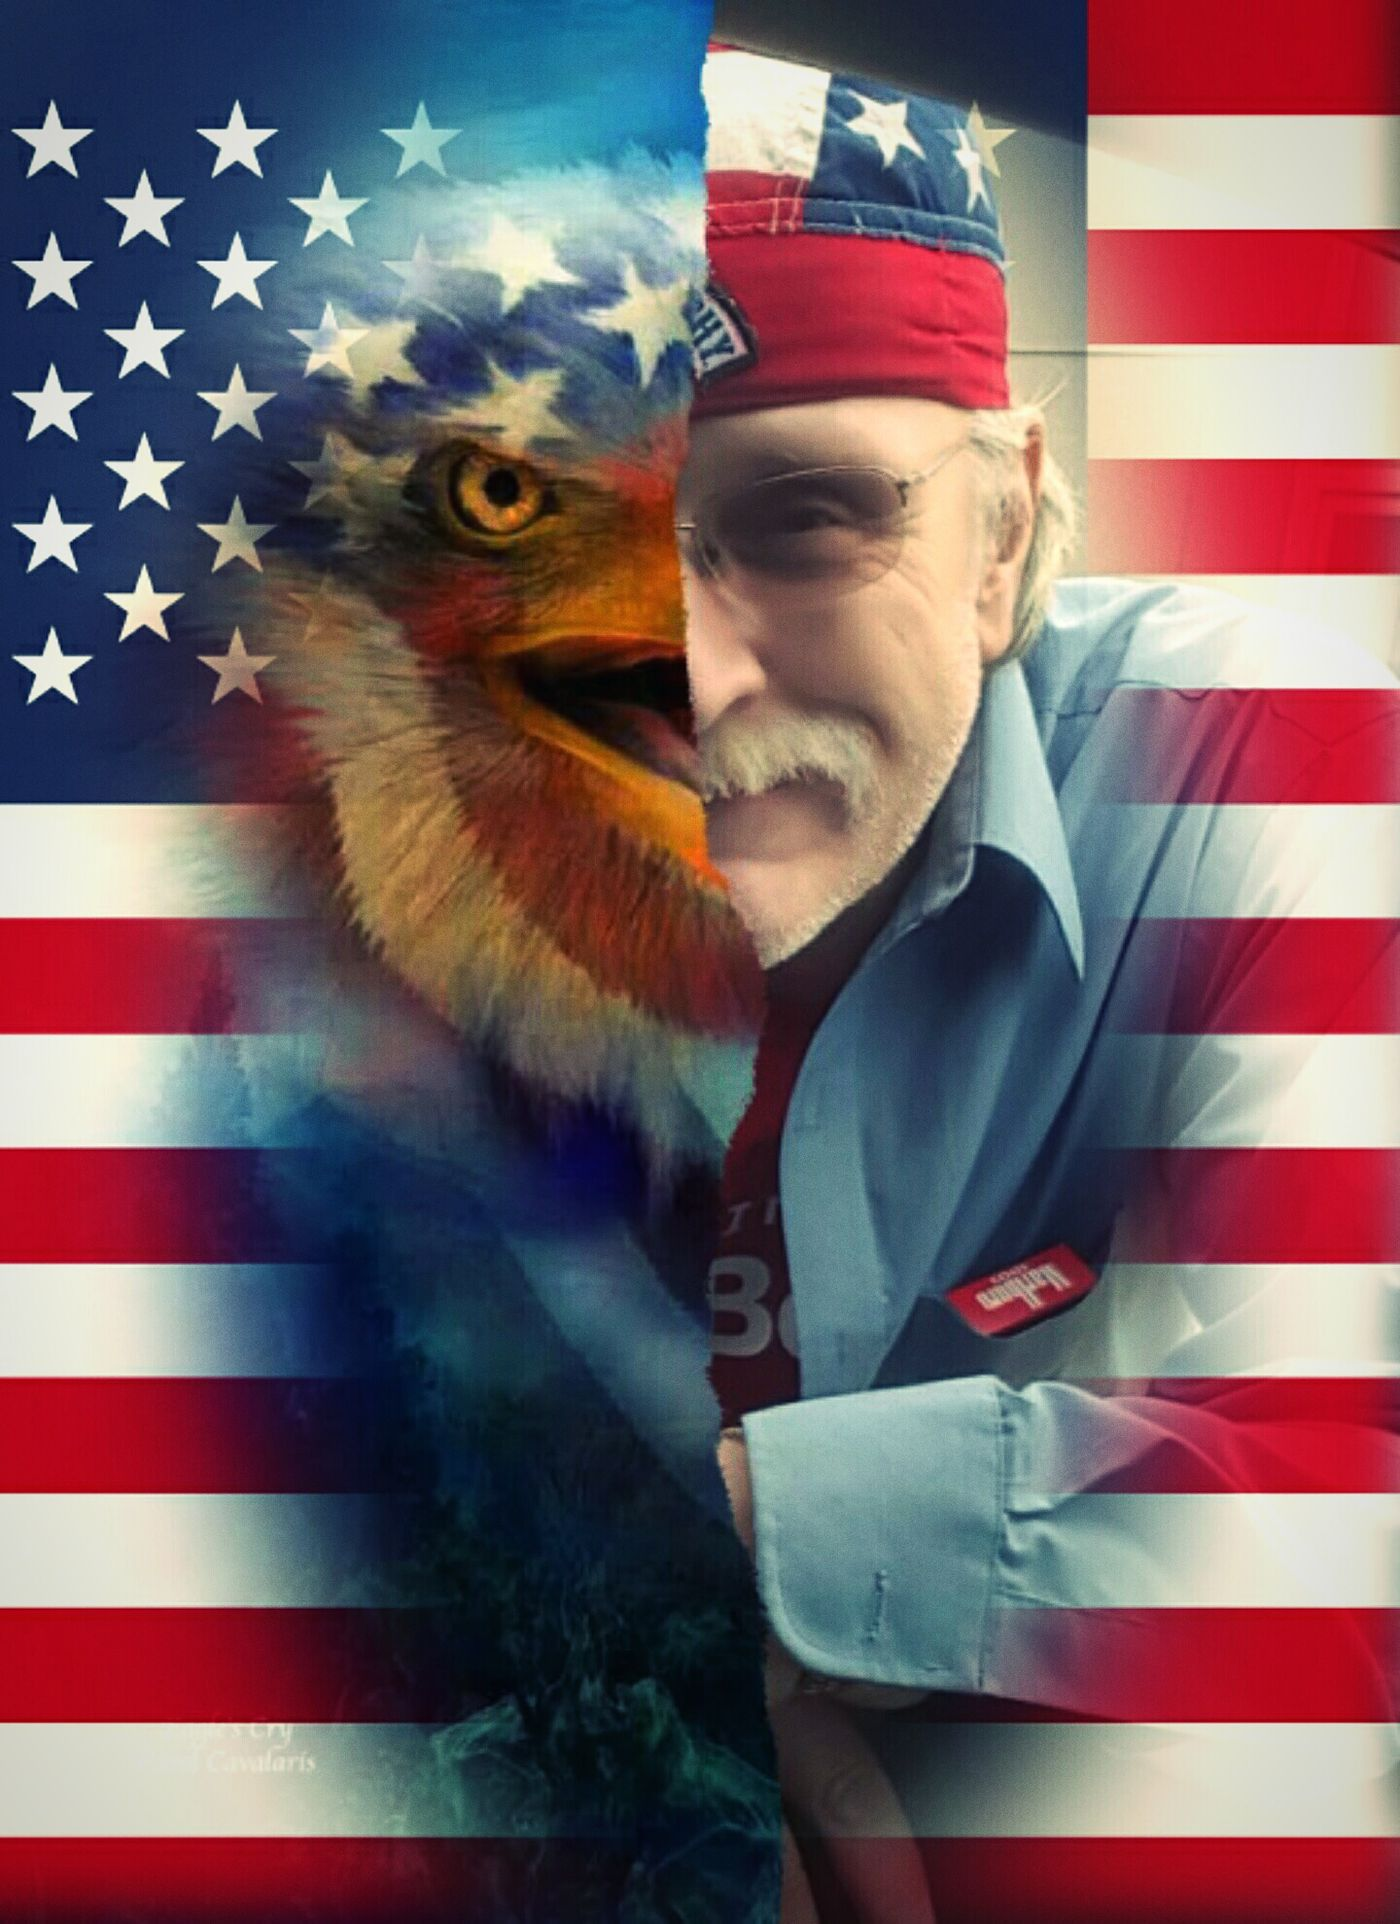 Favorite Animal American Flag American Eagle Americaneagle Dad Half Face EyeEm Best Edits Redwhiteandblue Starsandstrips Spirtanimal Proud To Be An American Hello World Blended Images Experimental Edit Check This Out 50stars USA FLAG Usawesome Usa♡ United States Unitedstatesofamerica Marlboro FaceShot